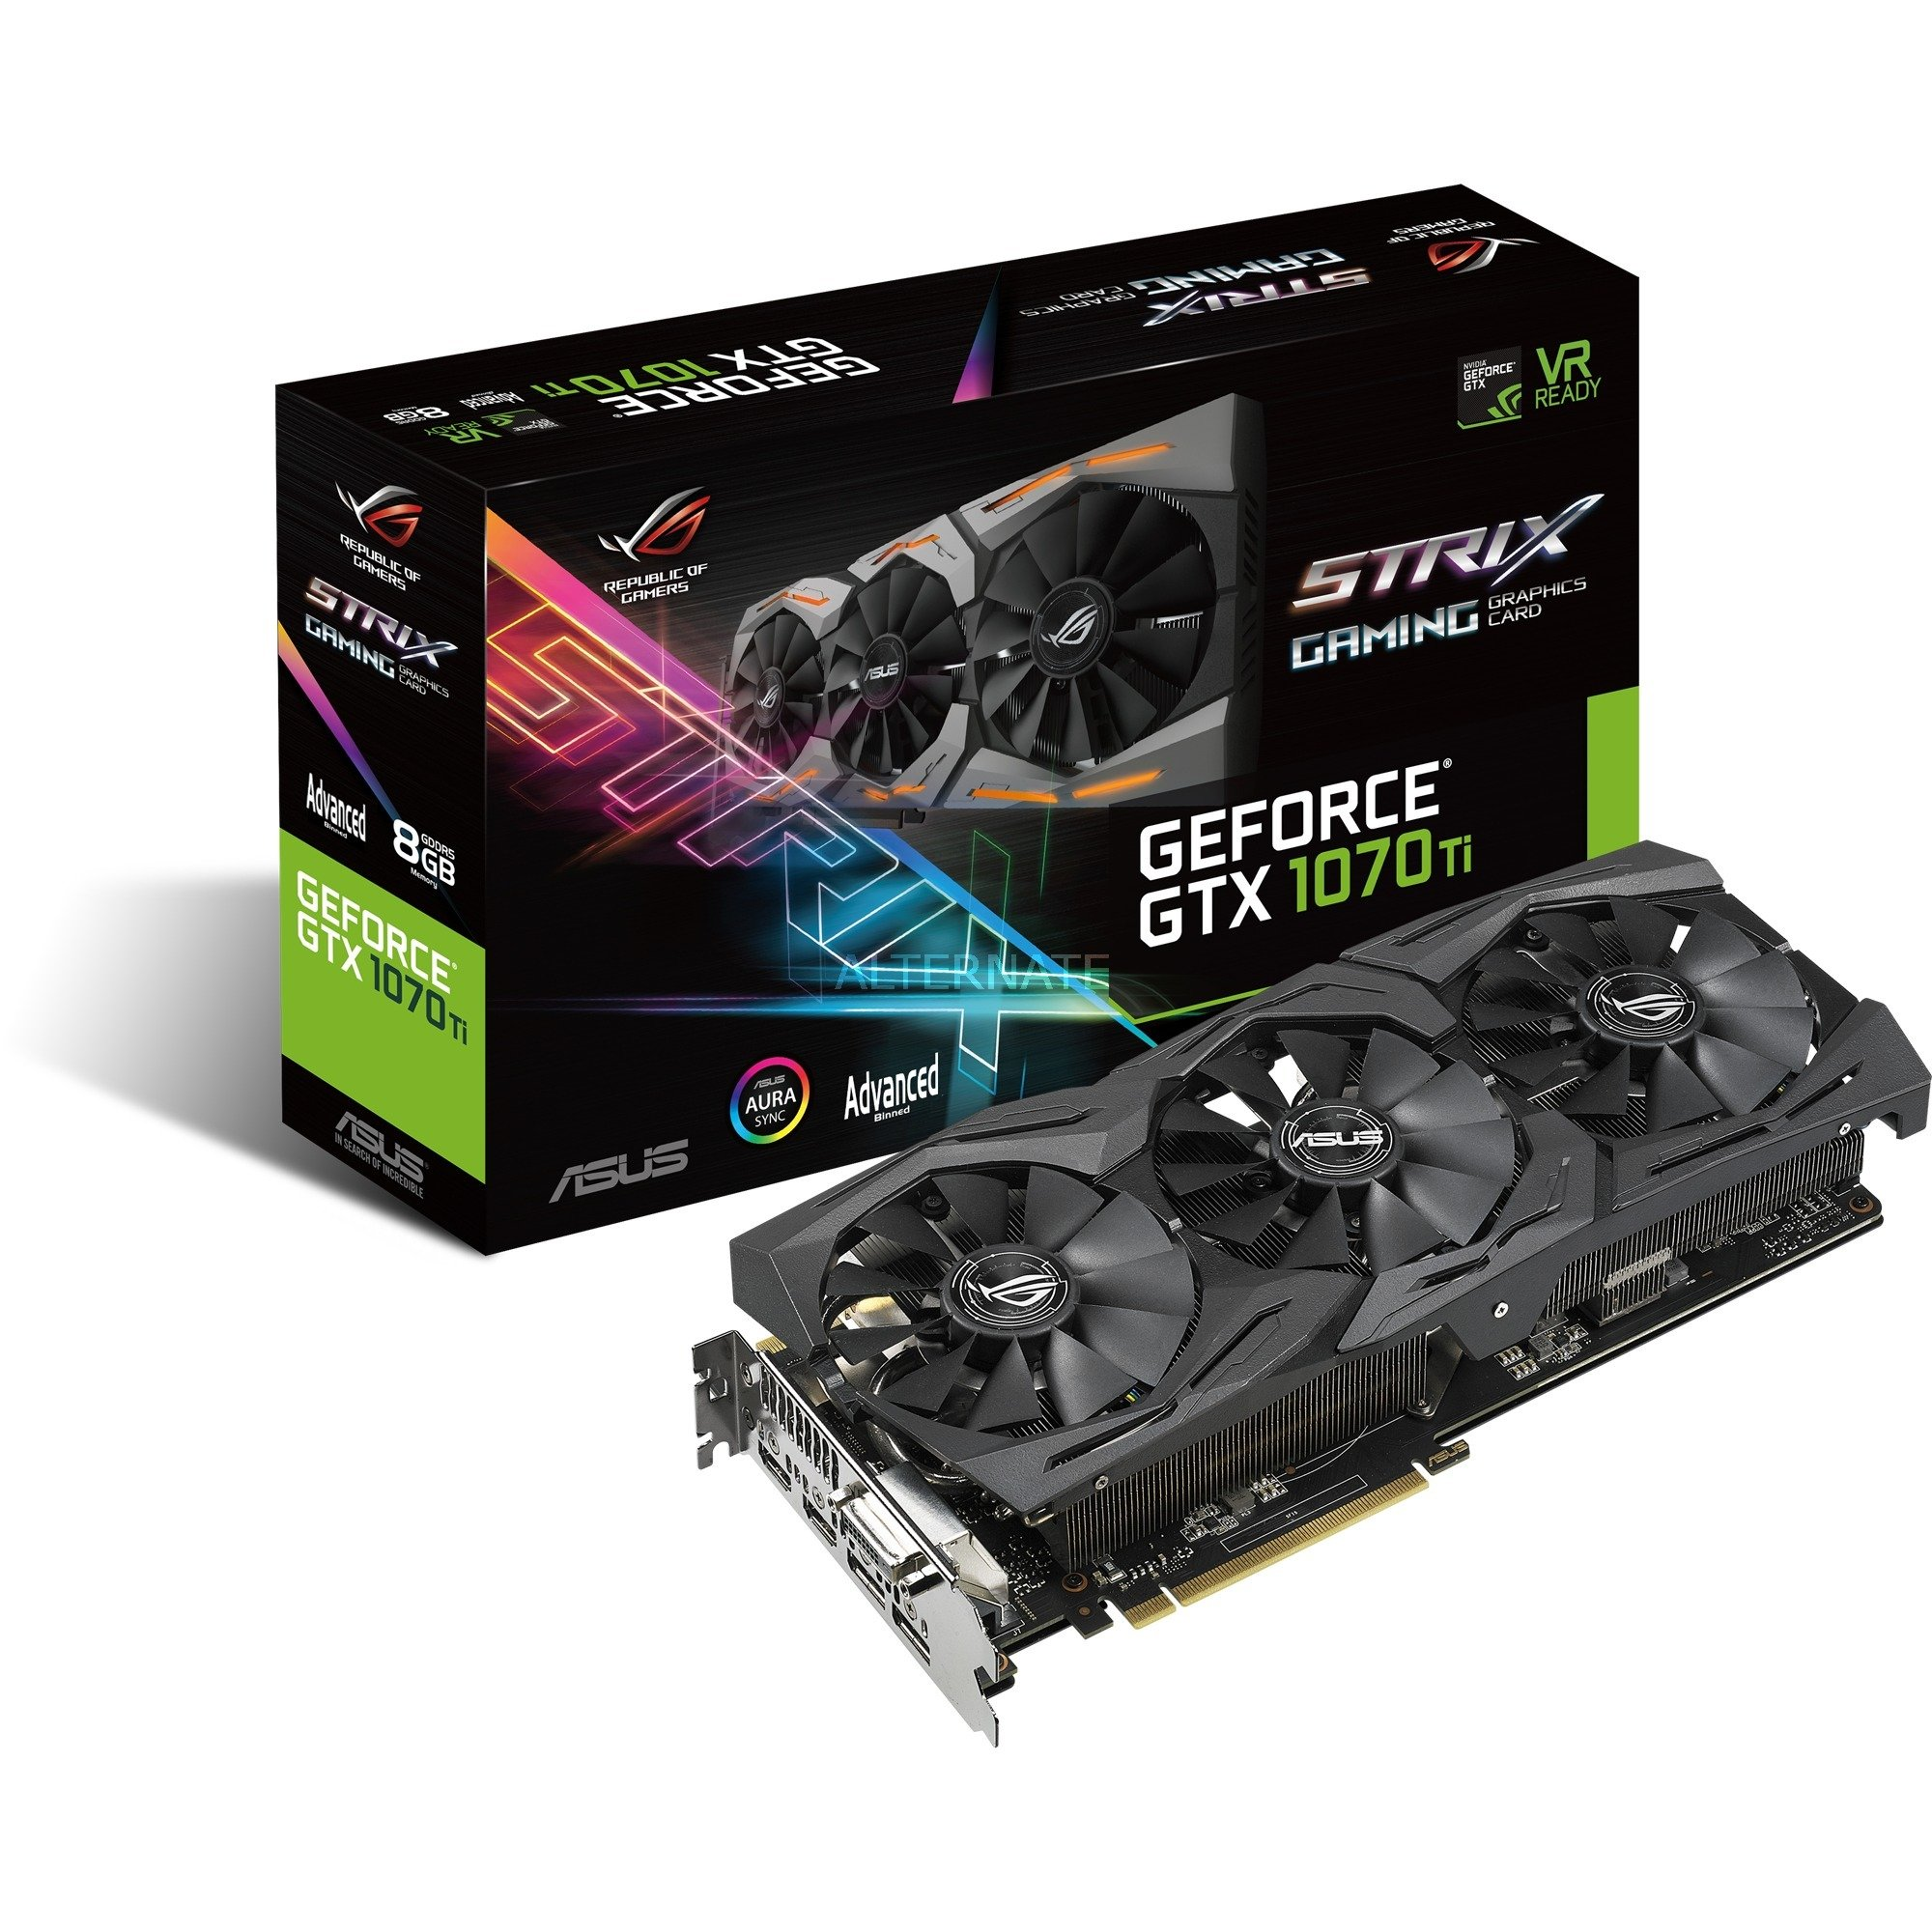 ROG STRIX GeForce GTX 1070 Ti GAMING Advanced, Carte graphique